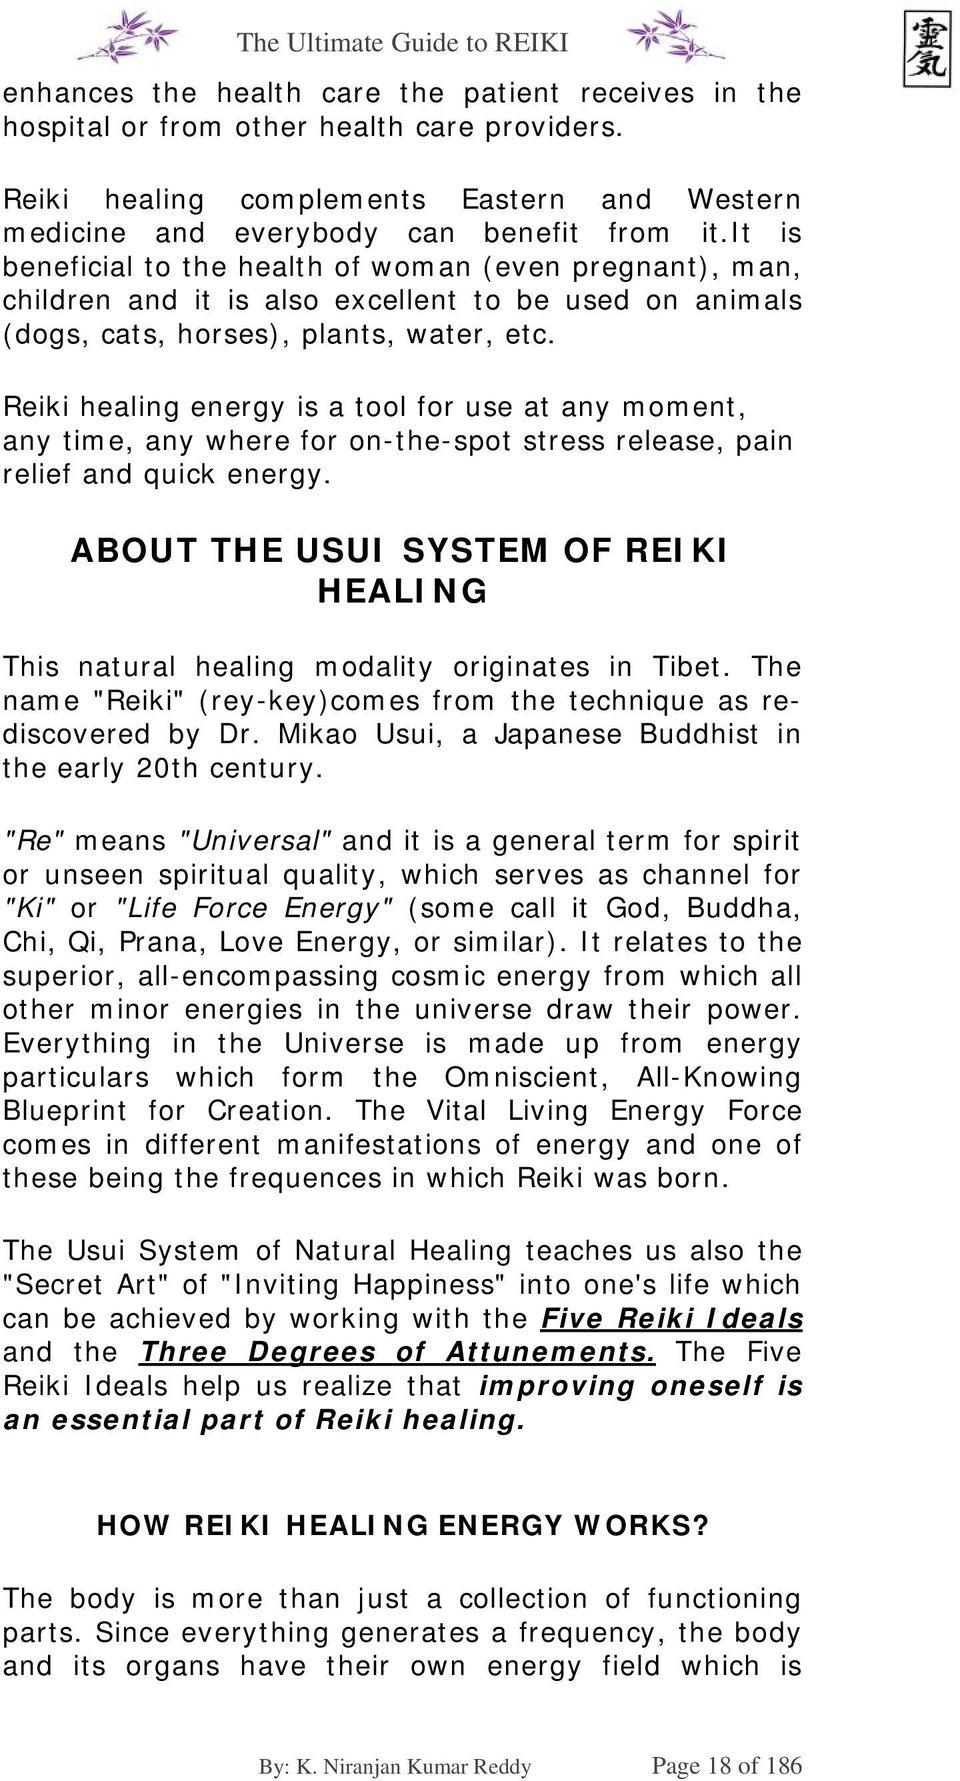 Reiki healing energy is a tool for use at any moment, any time, any where for on-the-spot stress release, pain relief and quick energy.